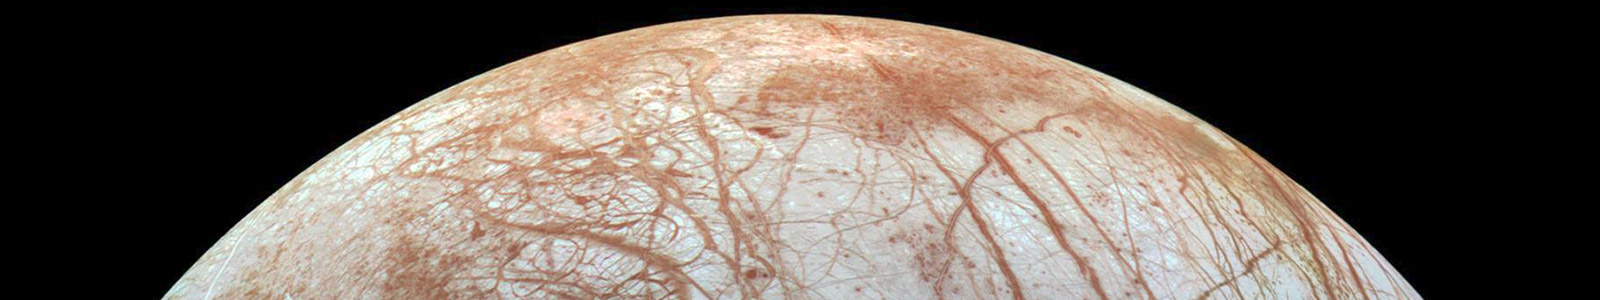 Jupiters Moon Europa